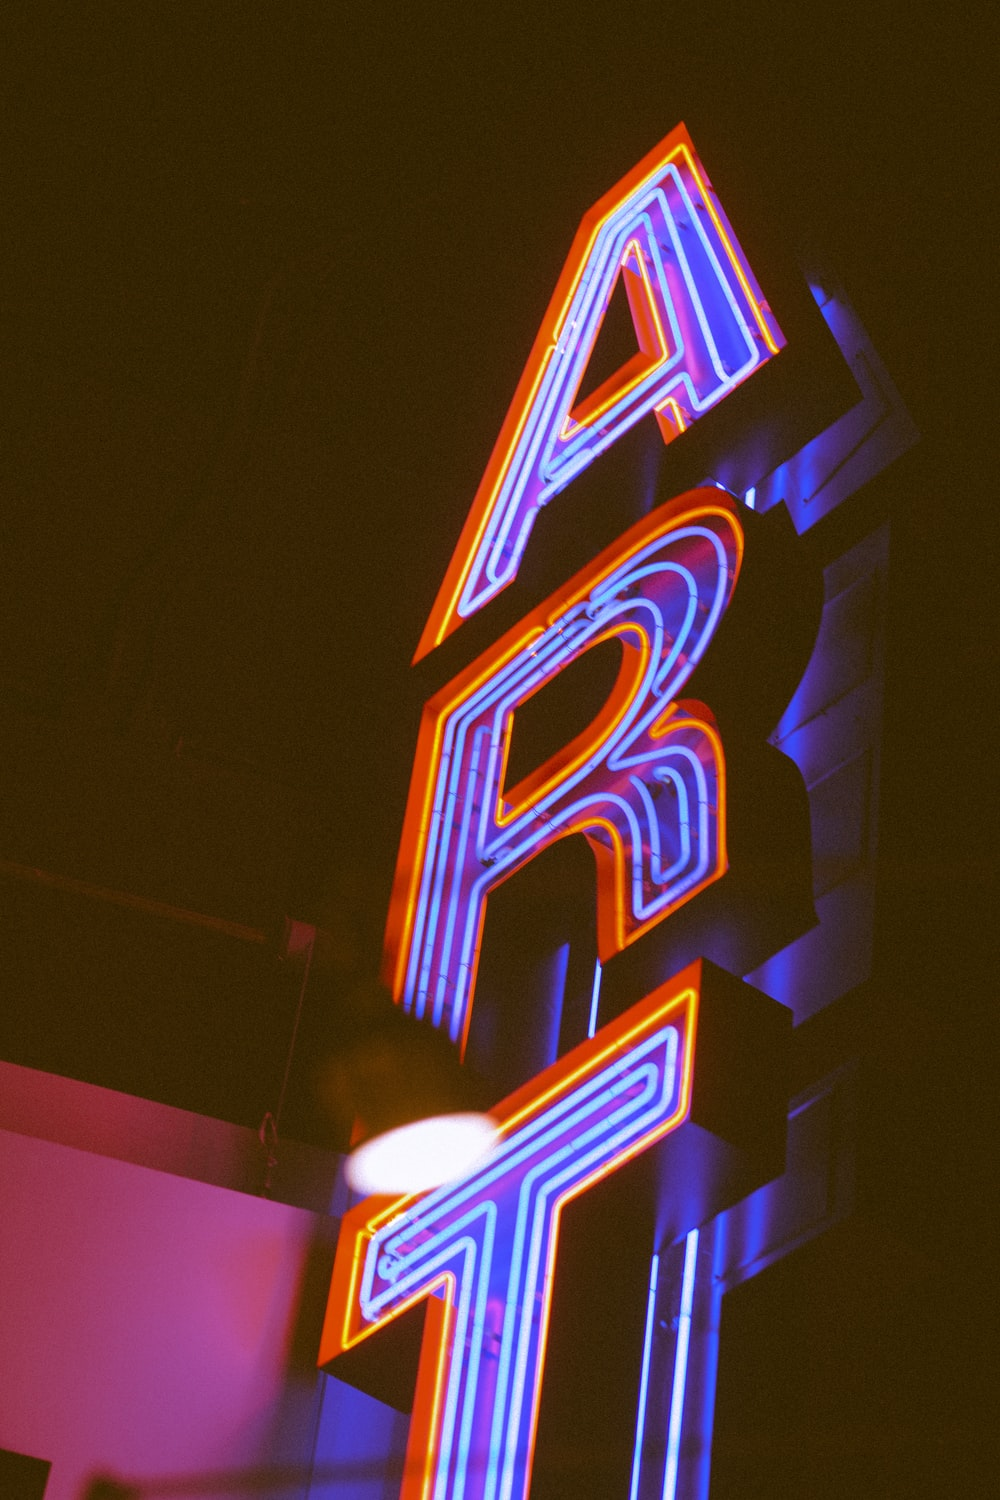 close-up photography of neon light signage